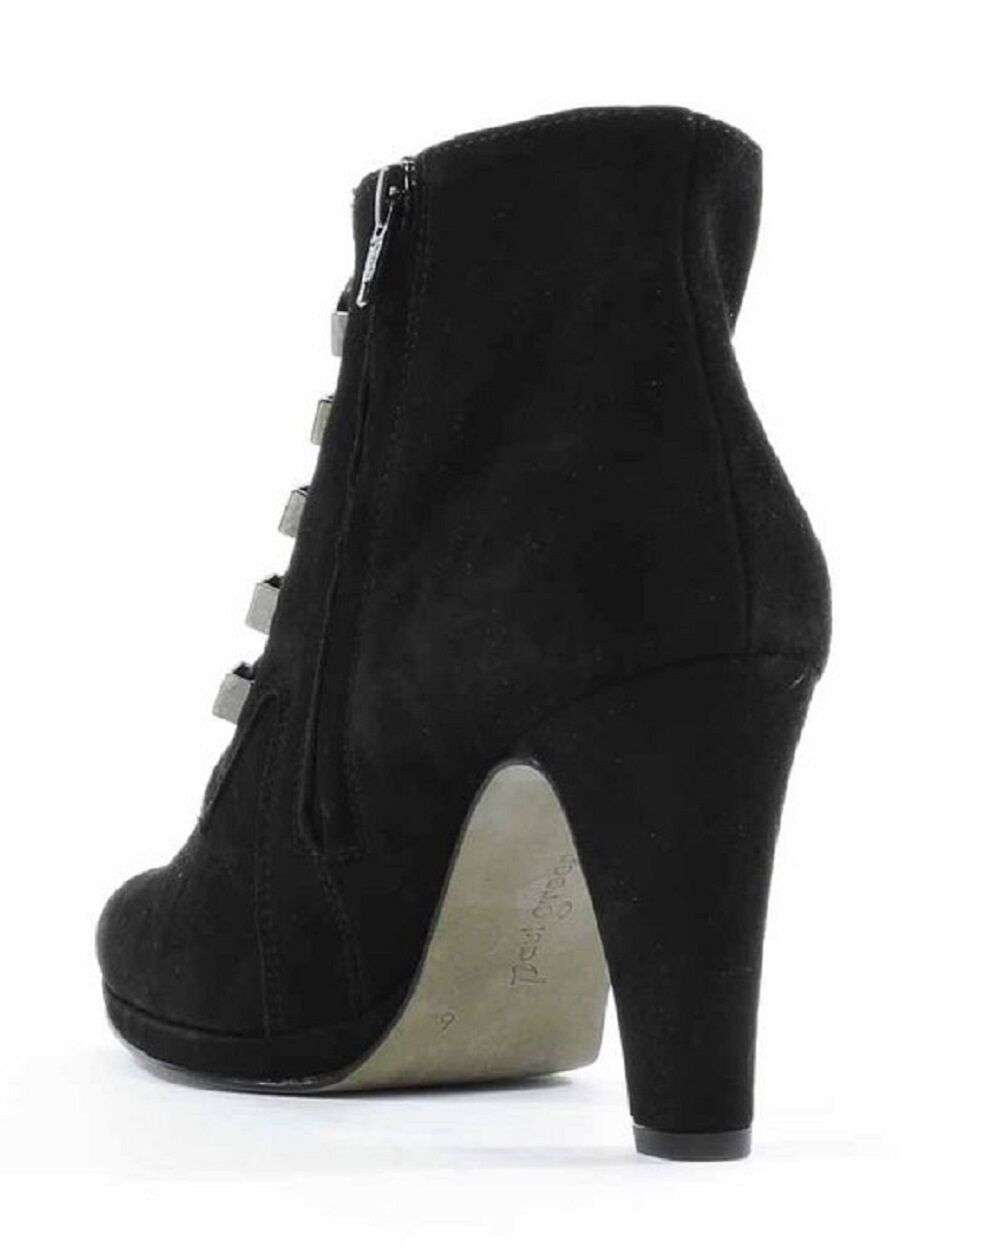 Paul Green Womens Eliza Boots Black Suede US US US 10 NEW IN BOX b86c58